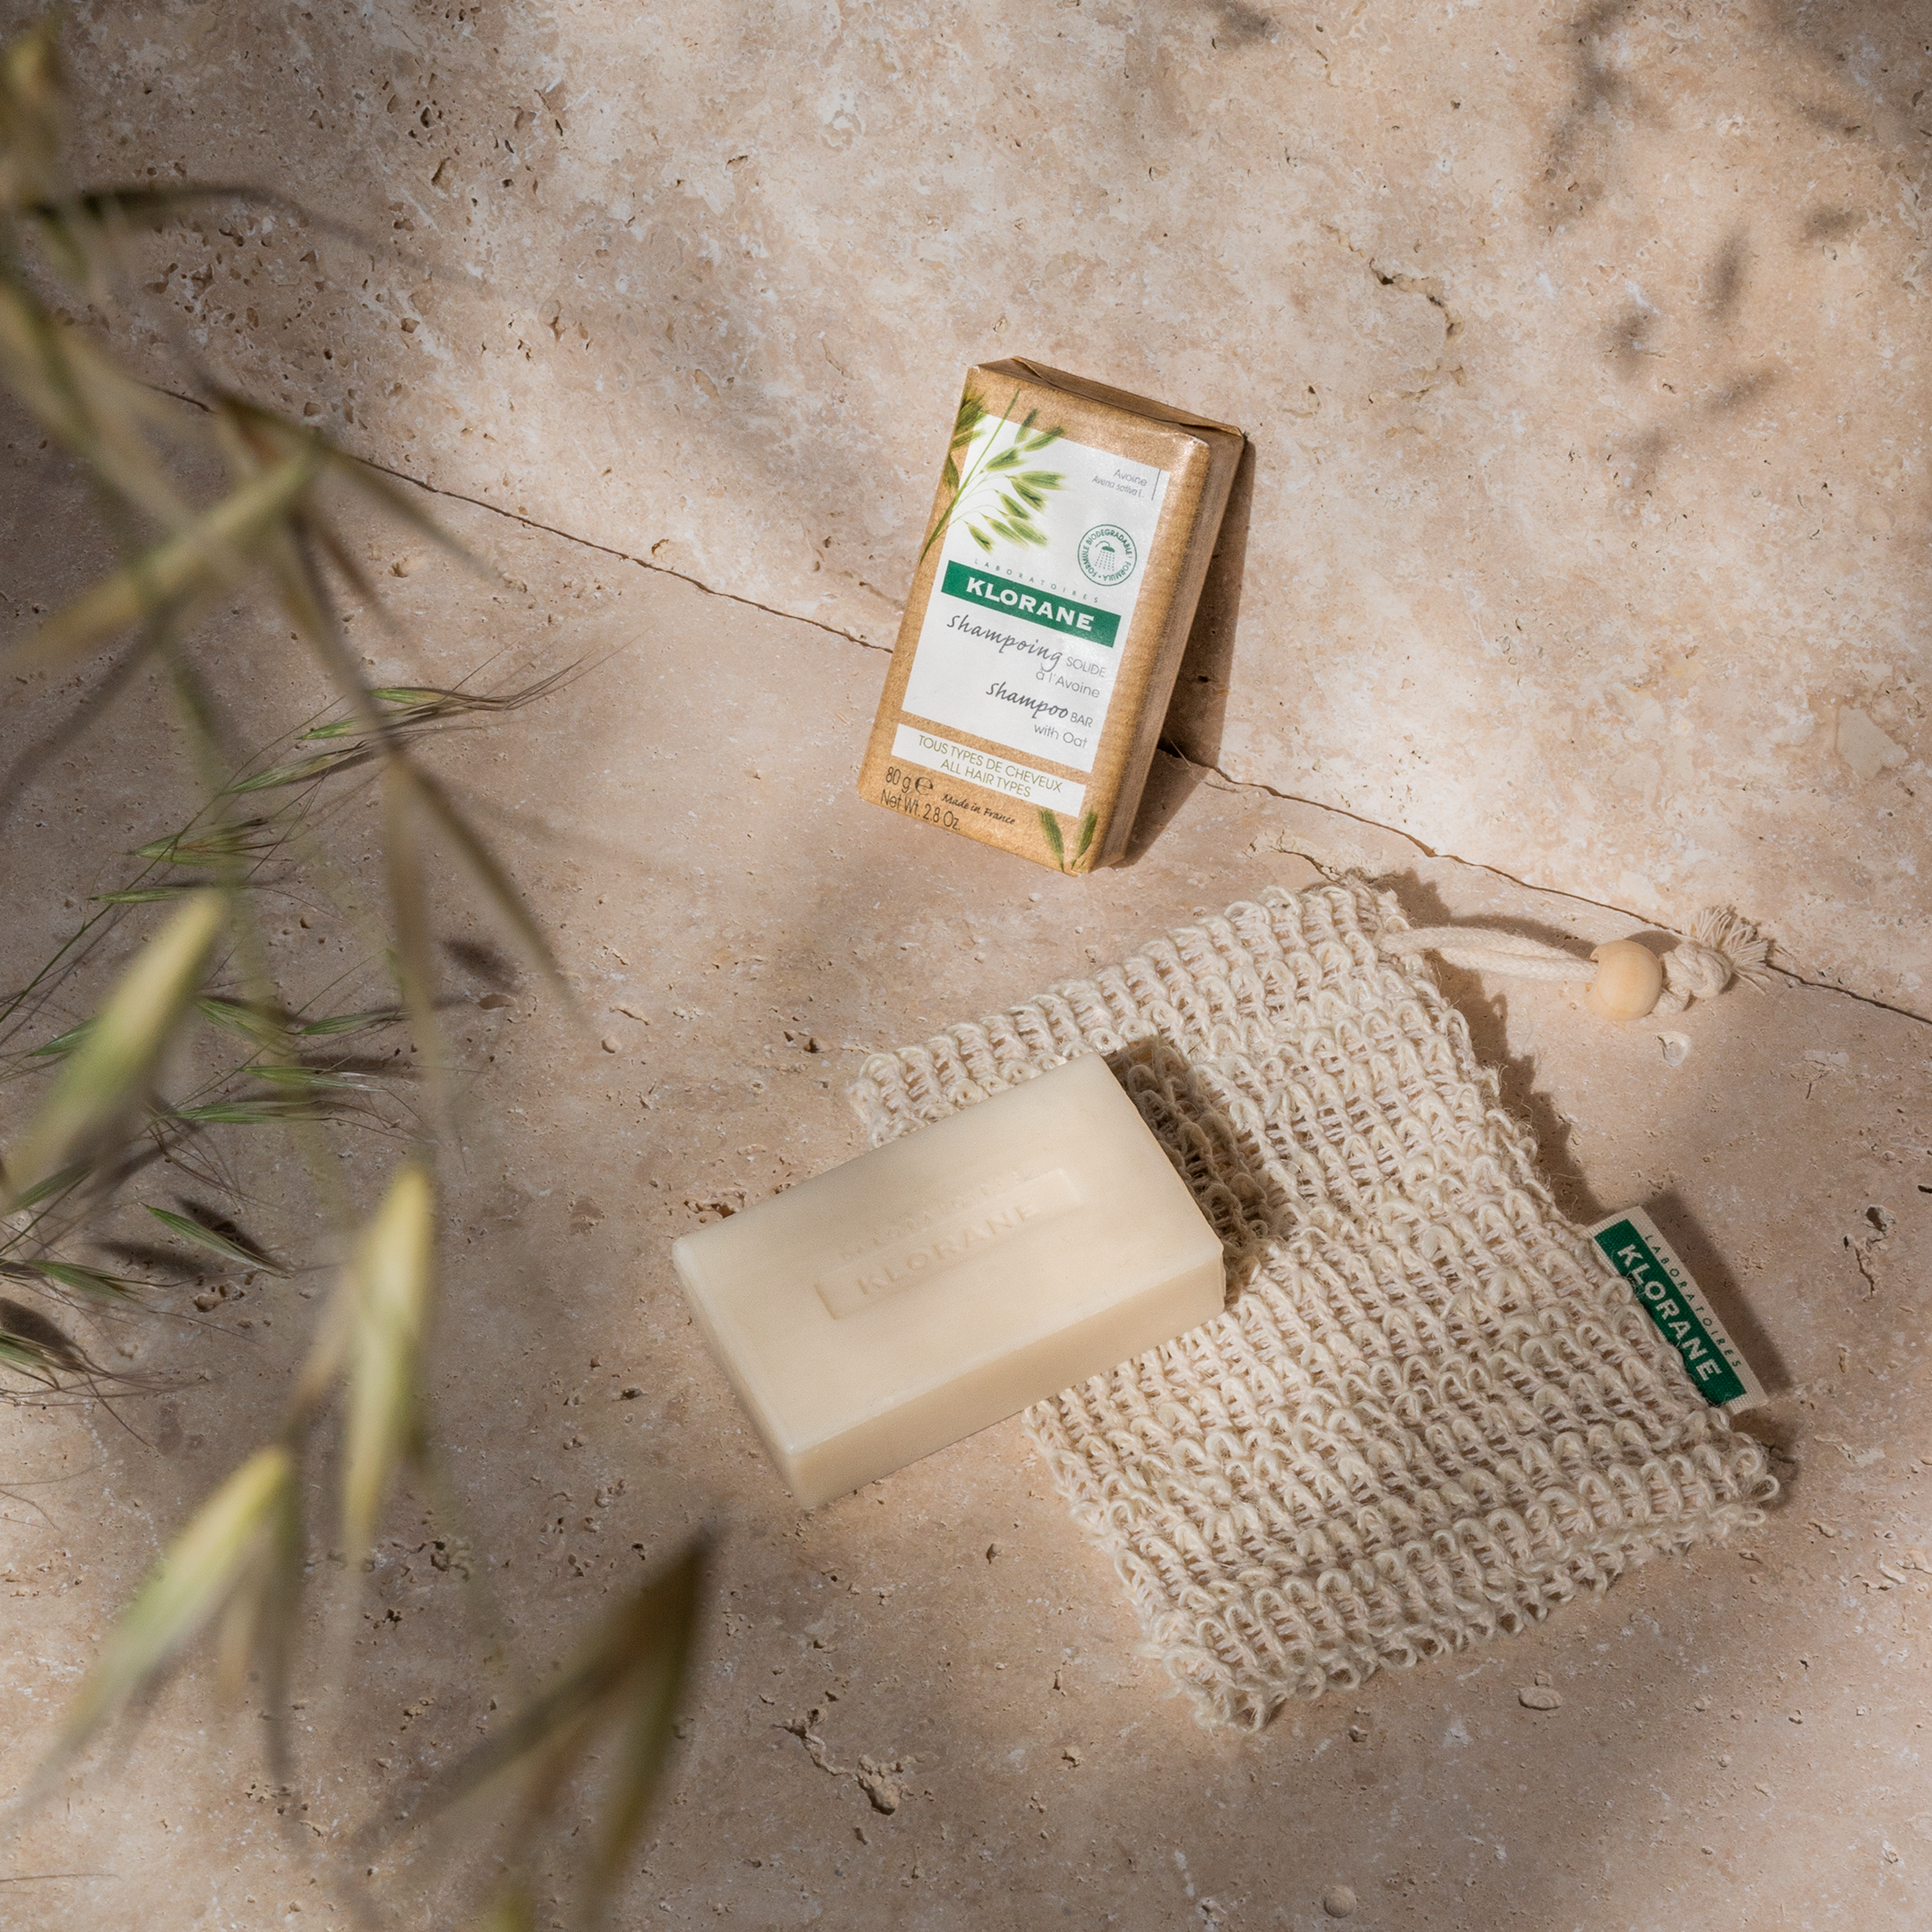 Klorane launches an eco-conscious Shampoo Bar with organically farmed Oat